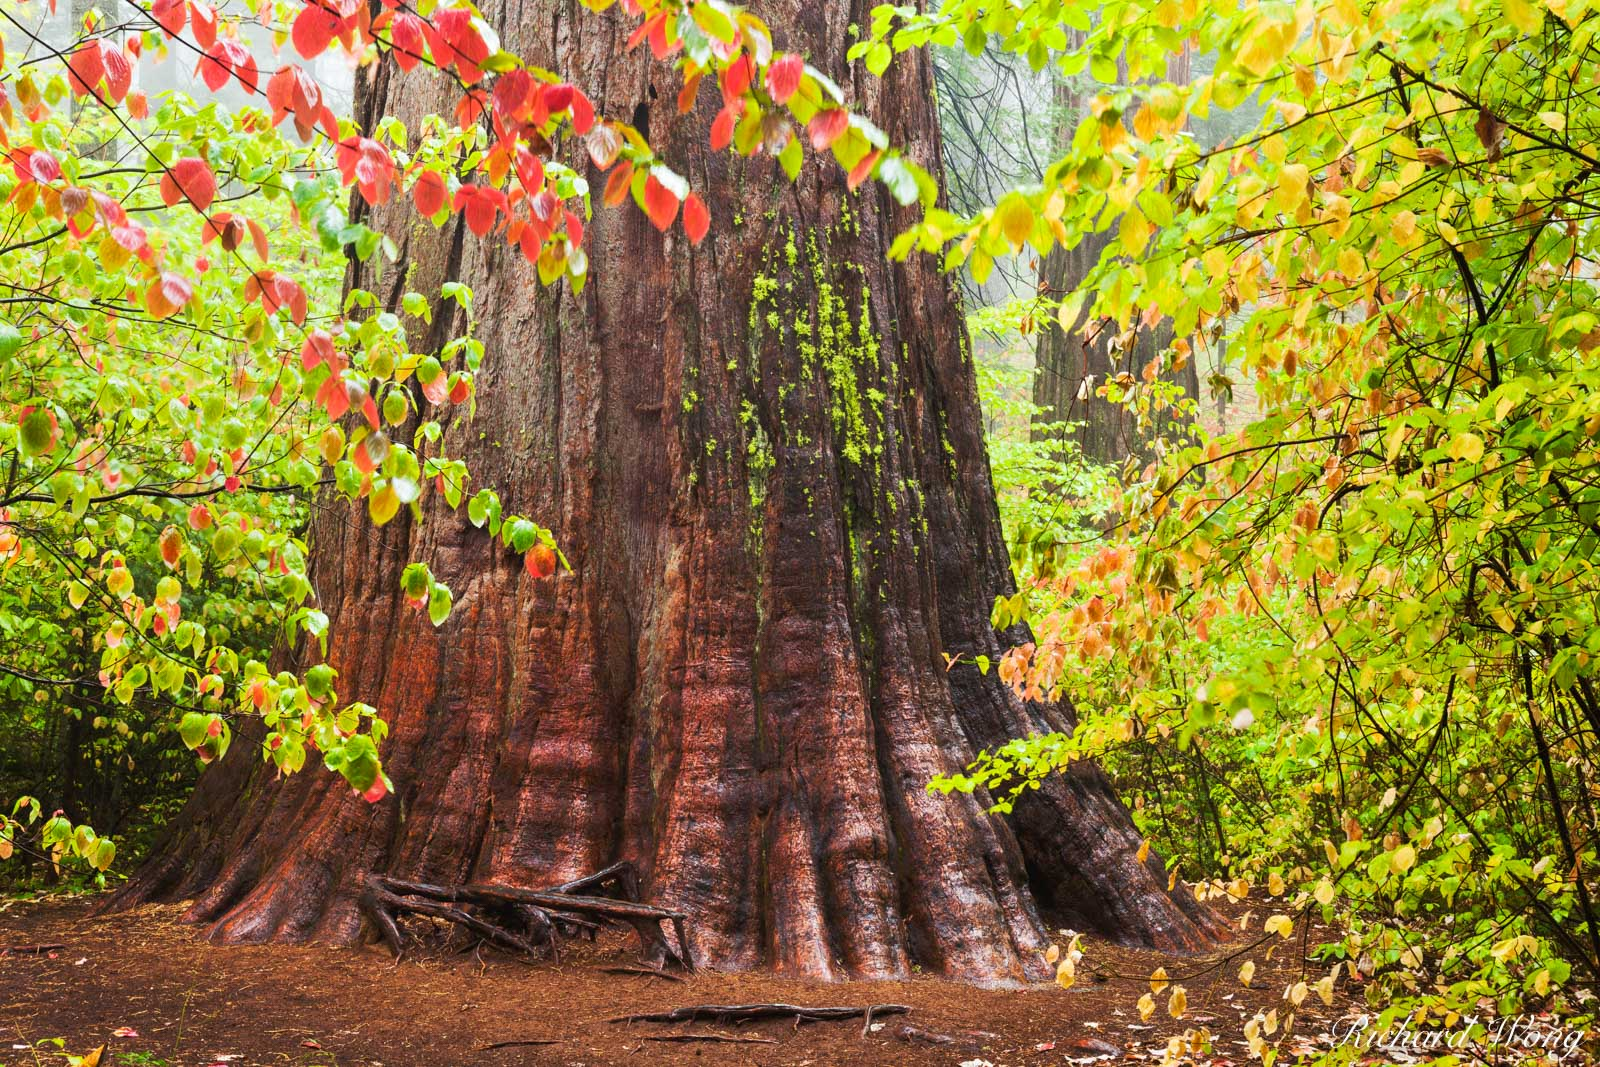 calaveras big trees state park, giant sequoia trees, fall foliage, dogwood, california, photo, photo